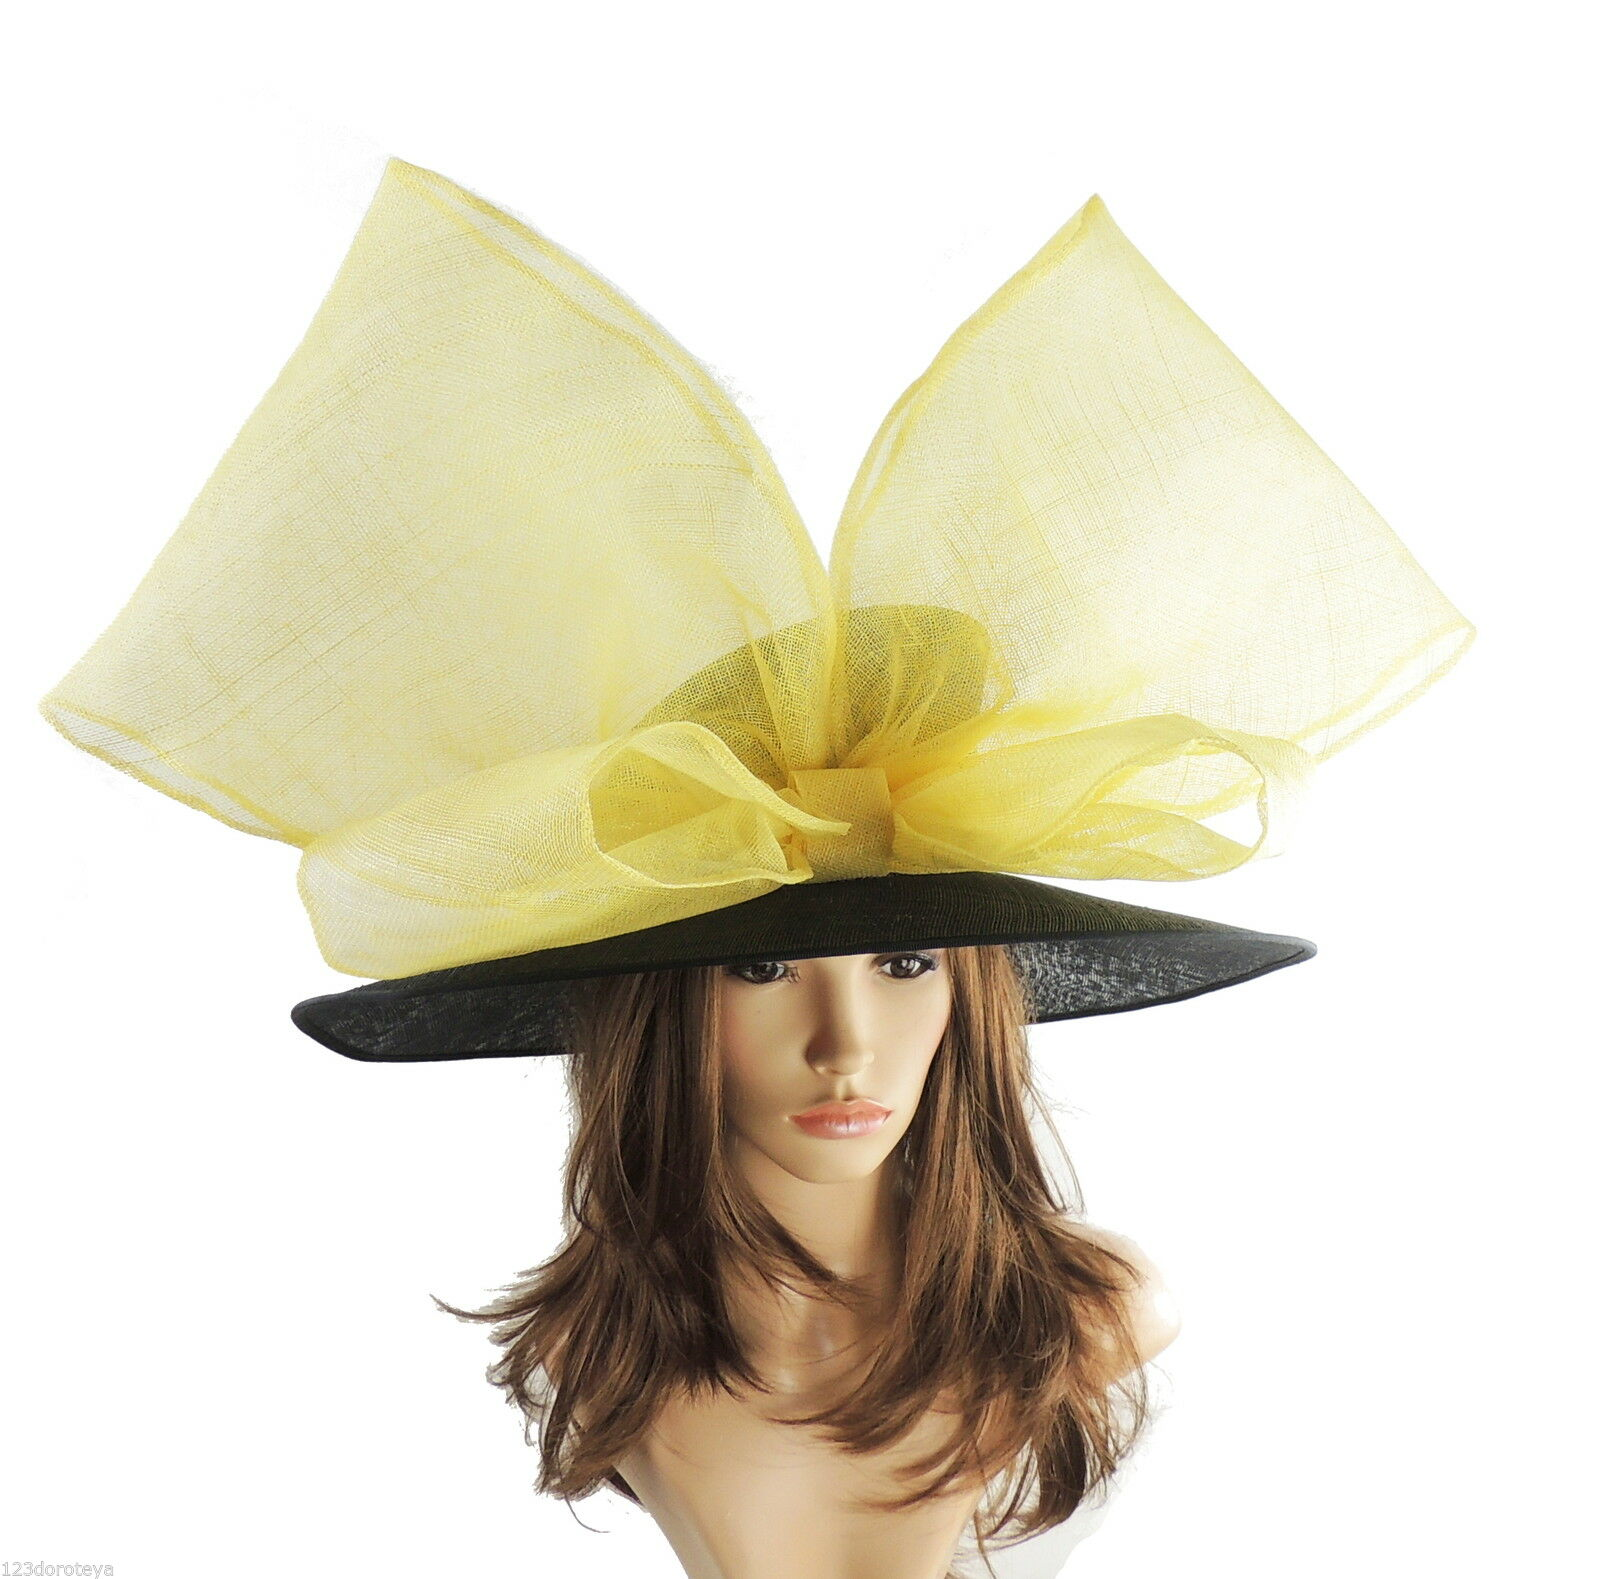 Black & Yellow Large Ascot Hat for Weddings, Ascot, Derby in many colors HC4